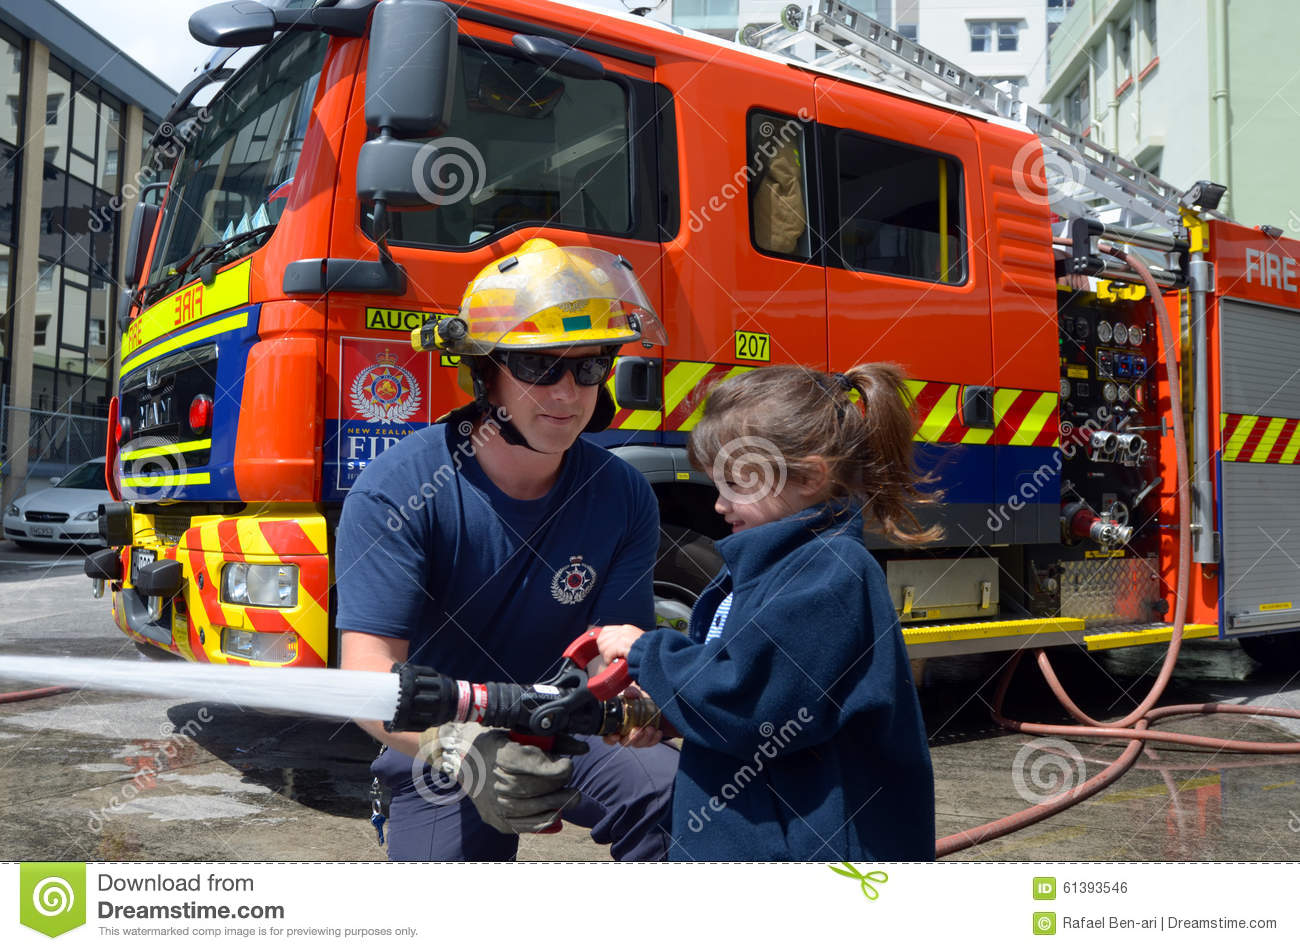 Firefighter and child